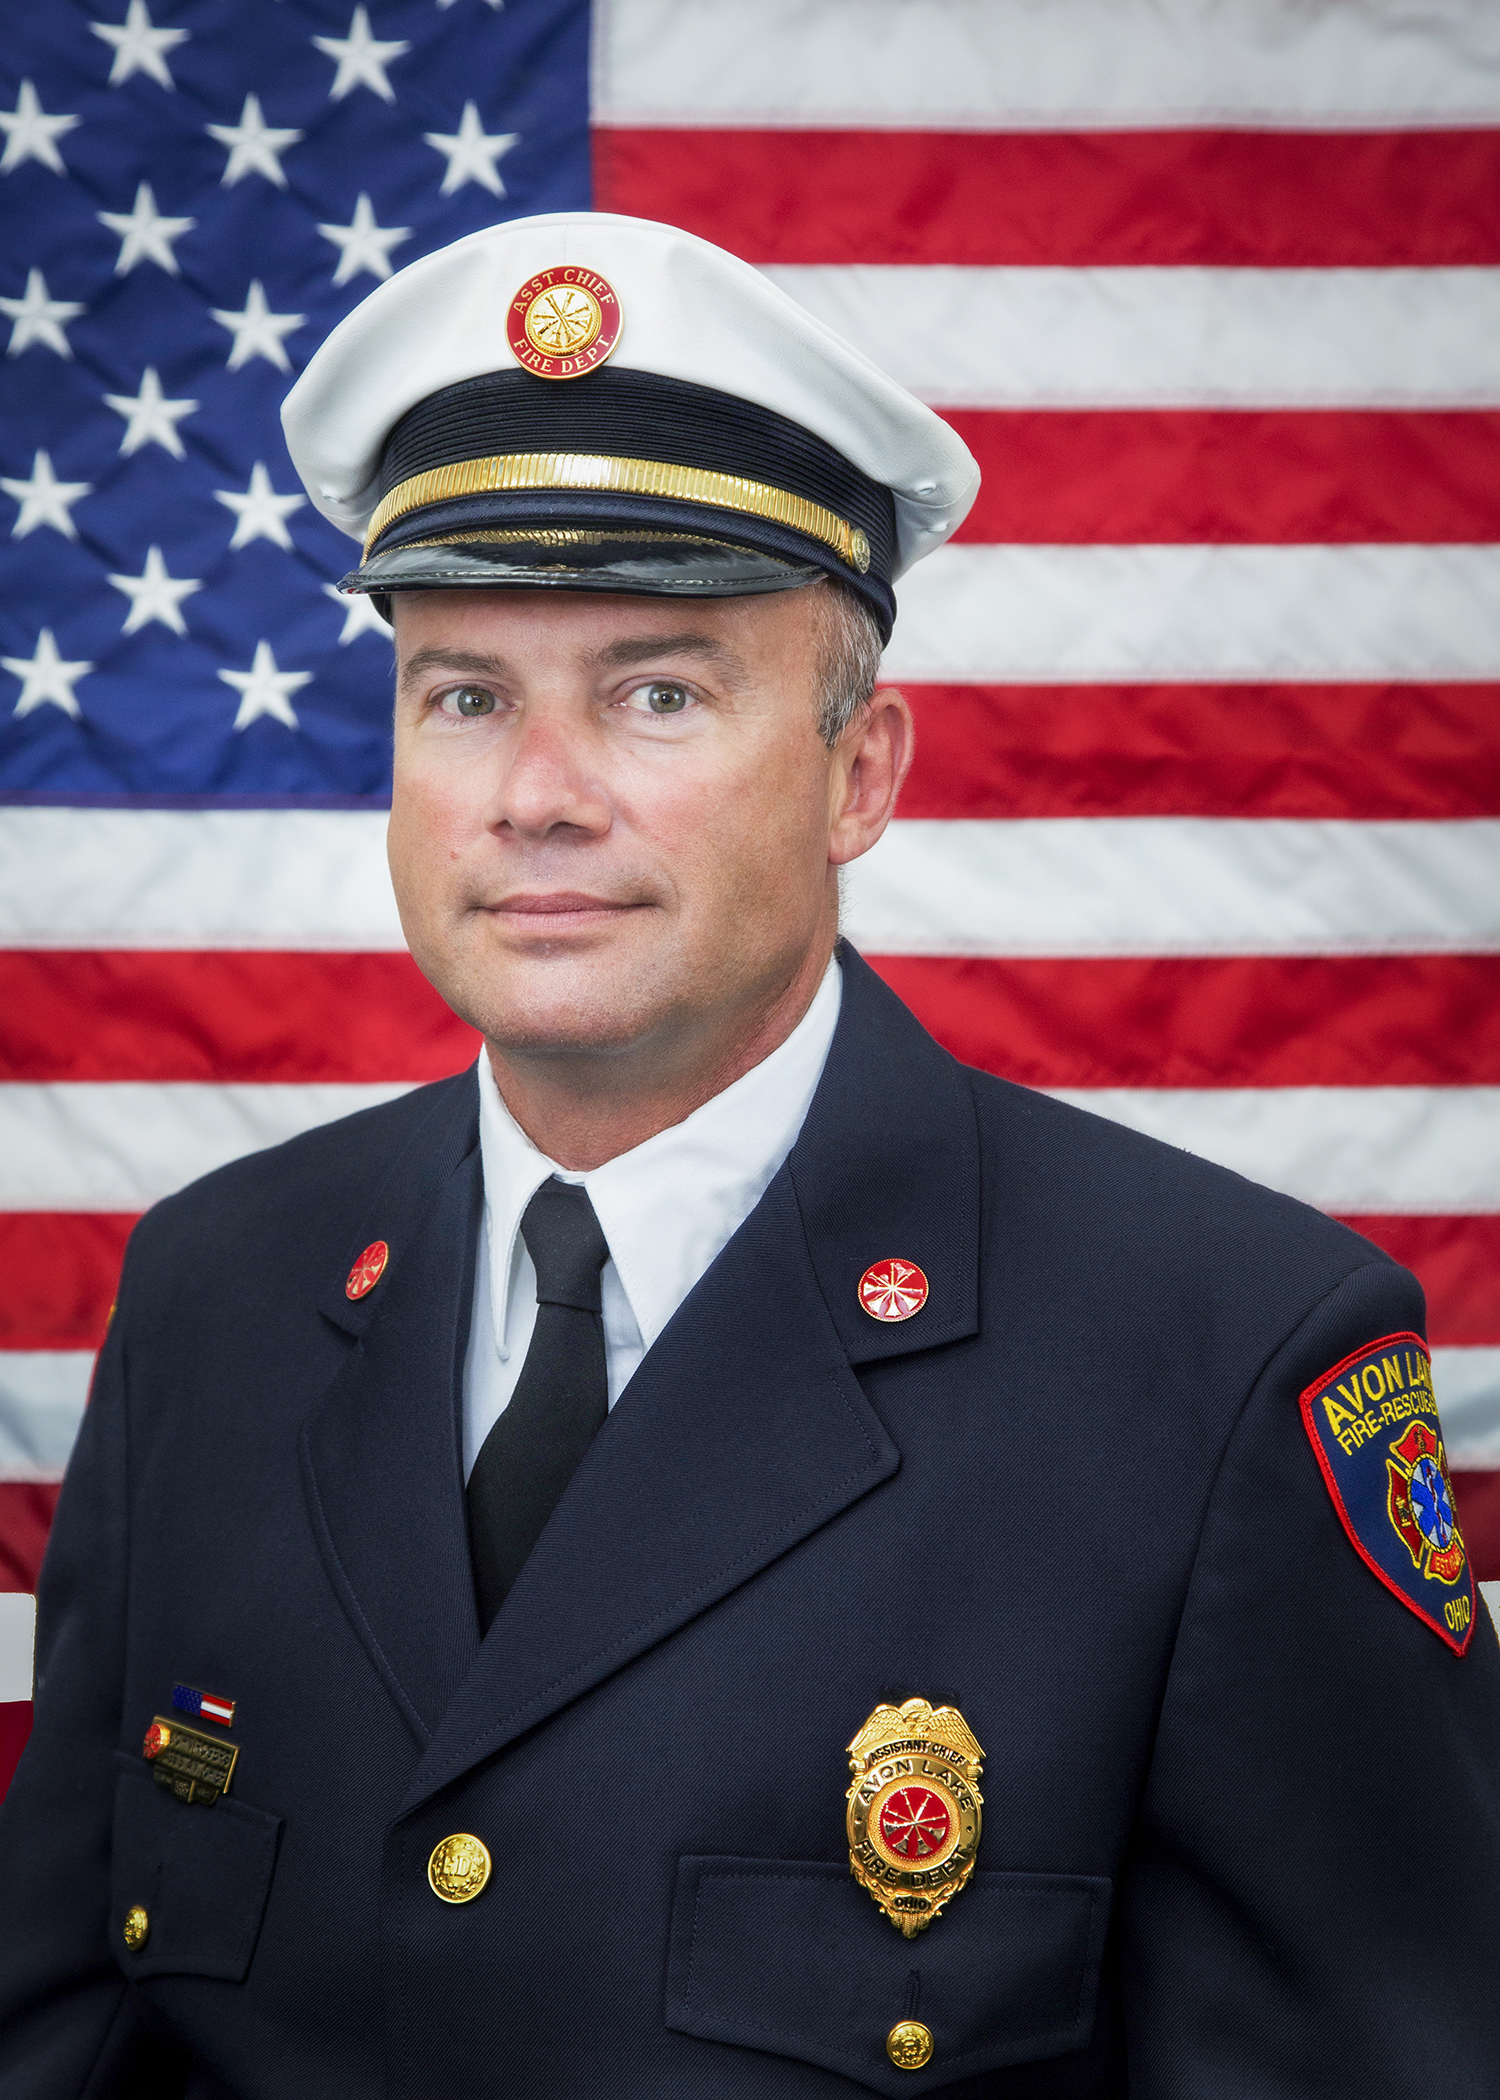 Assistant Chief John Rogers